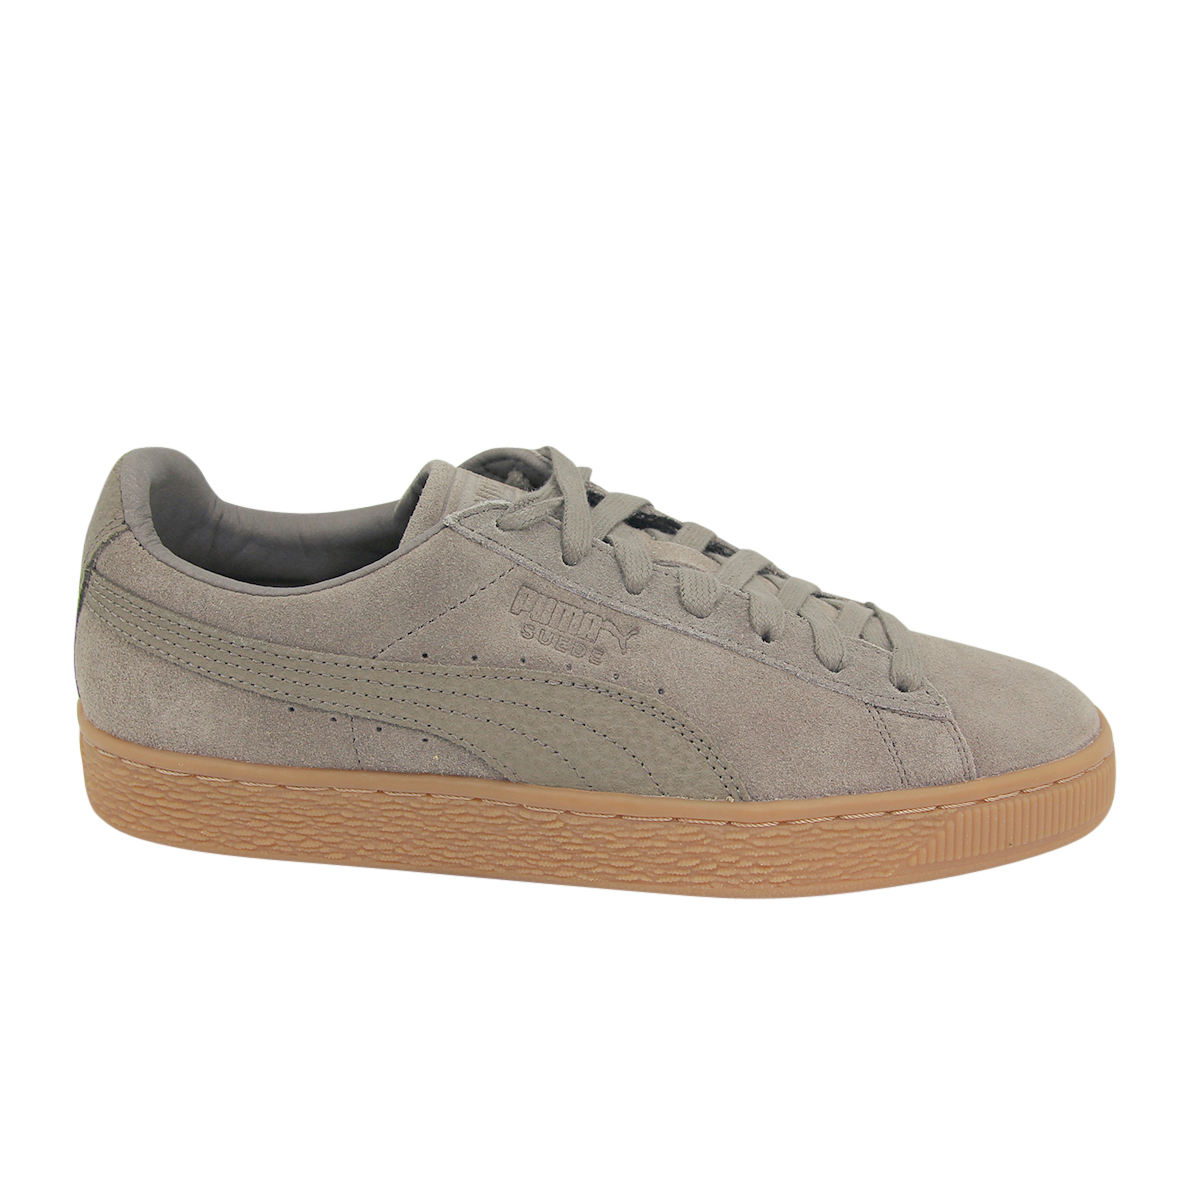 Hommes Natural 363869 5 Eu 6 40 Classic Warmth 01 Uk Puma Suede TxP1pp